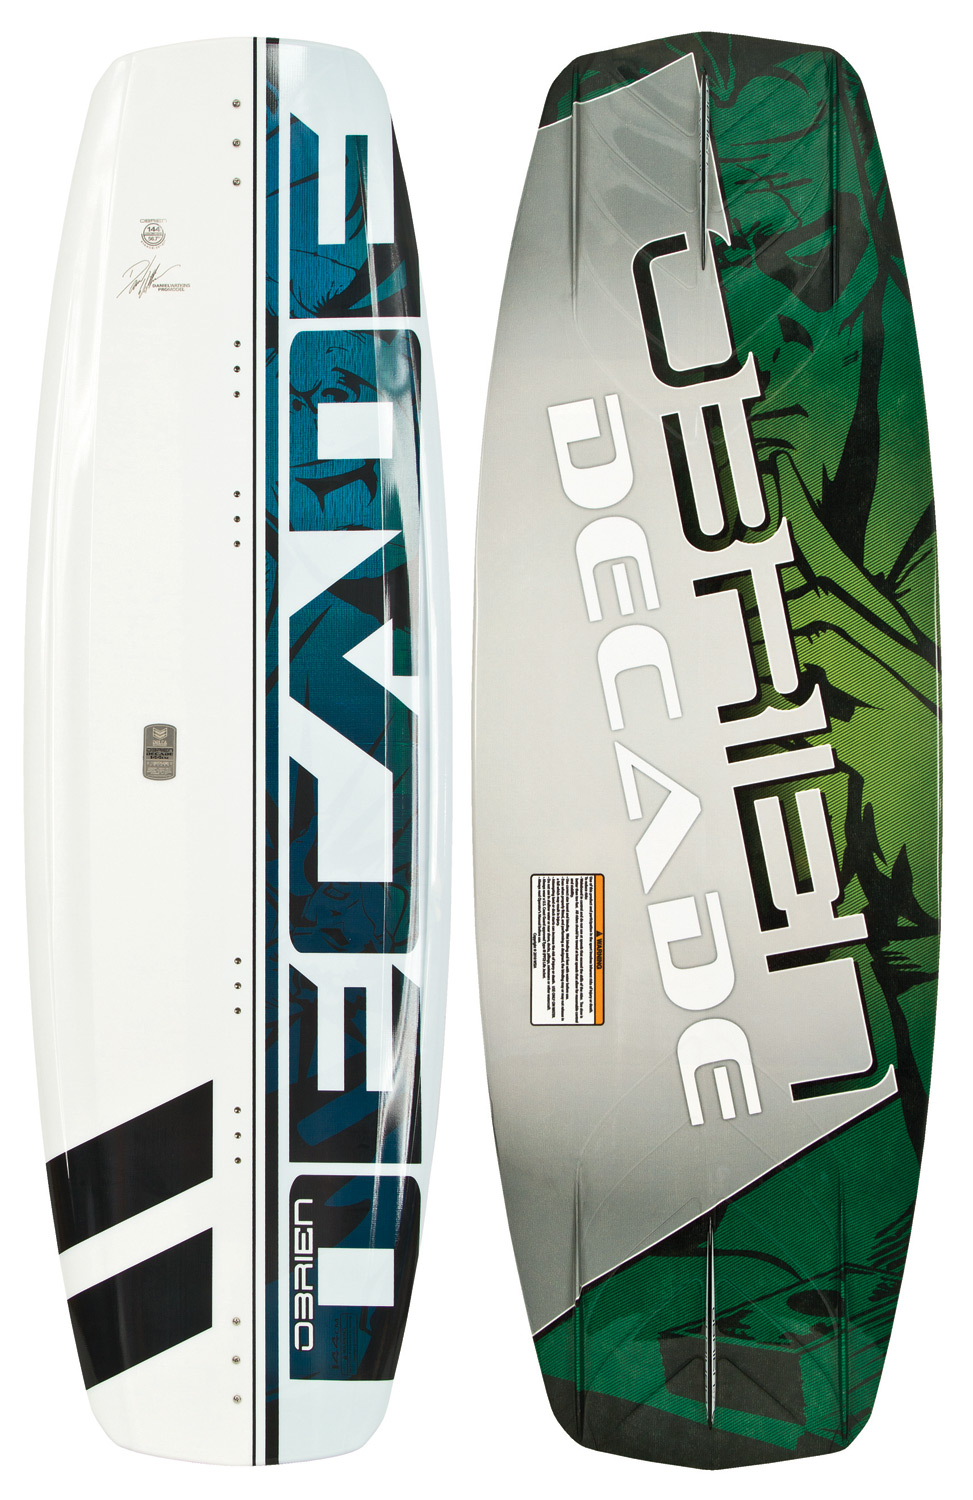 "Wake The O'Brien Decade Impact Wakeboard is quickly becoming the board of choice for both freeride and competition riders! The Decade pushes the envelope of thought and progression in wakeboard design. The variable edge profile is fat through the center 14"" of the board, and quickly tapers to a more refined edge from the boot position to the tips. This gives the board a unique float feel when centered, transferring to a deep-set edge when carving. The expanded Delta base keeps the water cleanly breaking off the tail of the board, decreasing rocker-induced drag and providing optimum release off the wake. The molded fins are as thin as possible for minimal resistance and optimum control, and have been combined with a 3-stage rocker for just the right amount of kick. The Clean V bottom through the center of the board makes sure your landings are buttery soft.* This board has some minor cosmetic defects-nothing that affects the performance * Variable edge profile * Expanded DELTA base * Rocker-induced drag * Molded fins * 3-stage rocker * Clean V bottom * Impact base * Wakeboard Binding Compatibility * Can accommodate bindings with a 6in binding plate * Can only accommodate a single mounting position option for Liquid Force bindings with a 8in binding plate and offers two positions for all other vendors - $147.95"